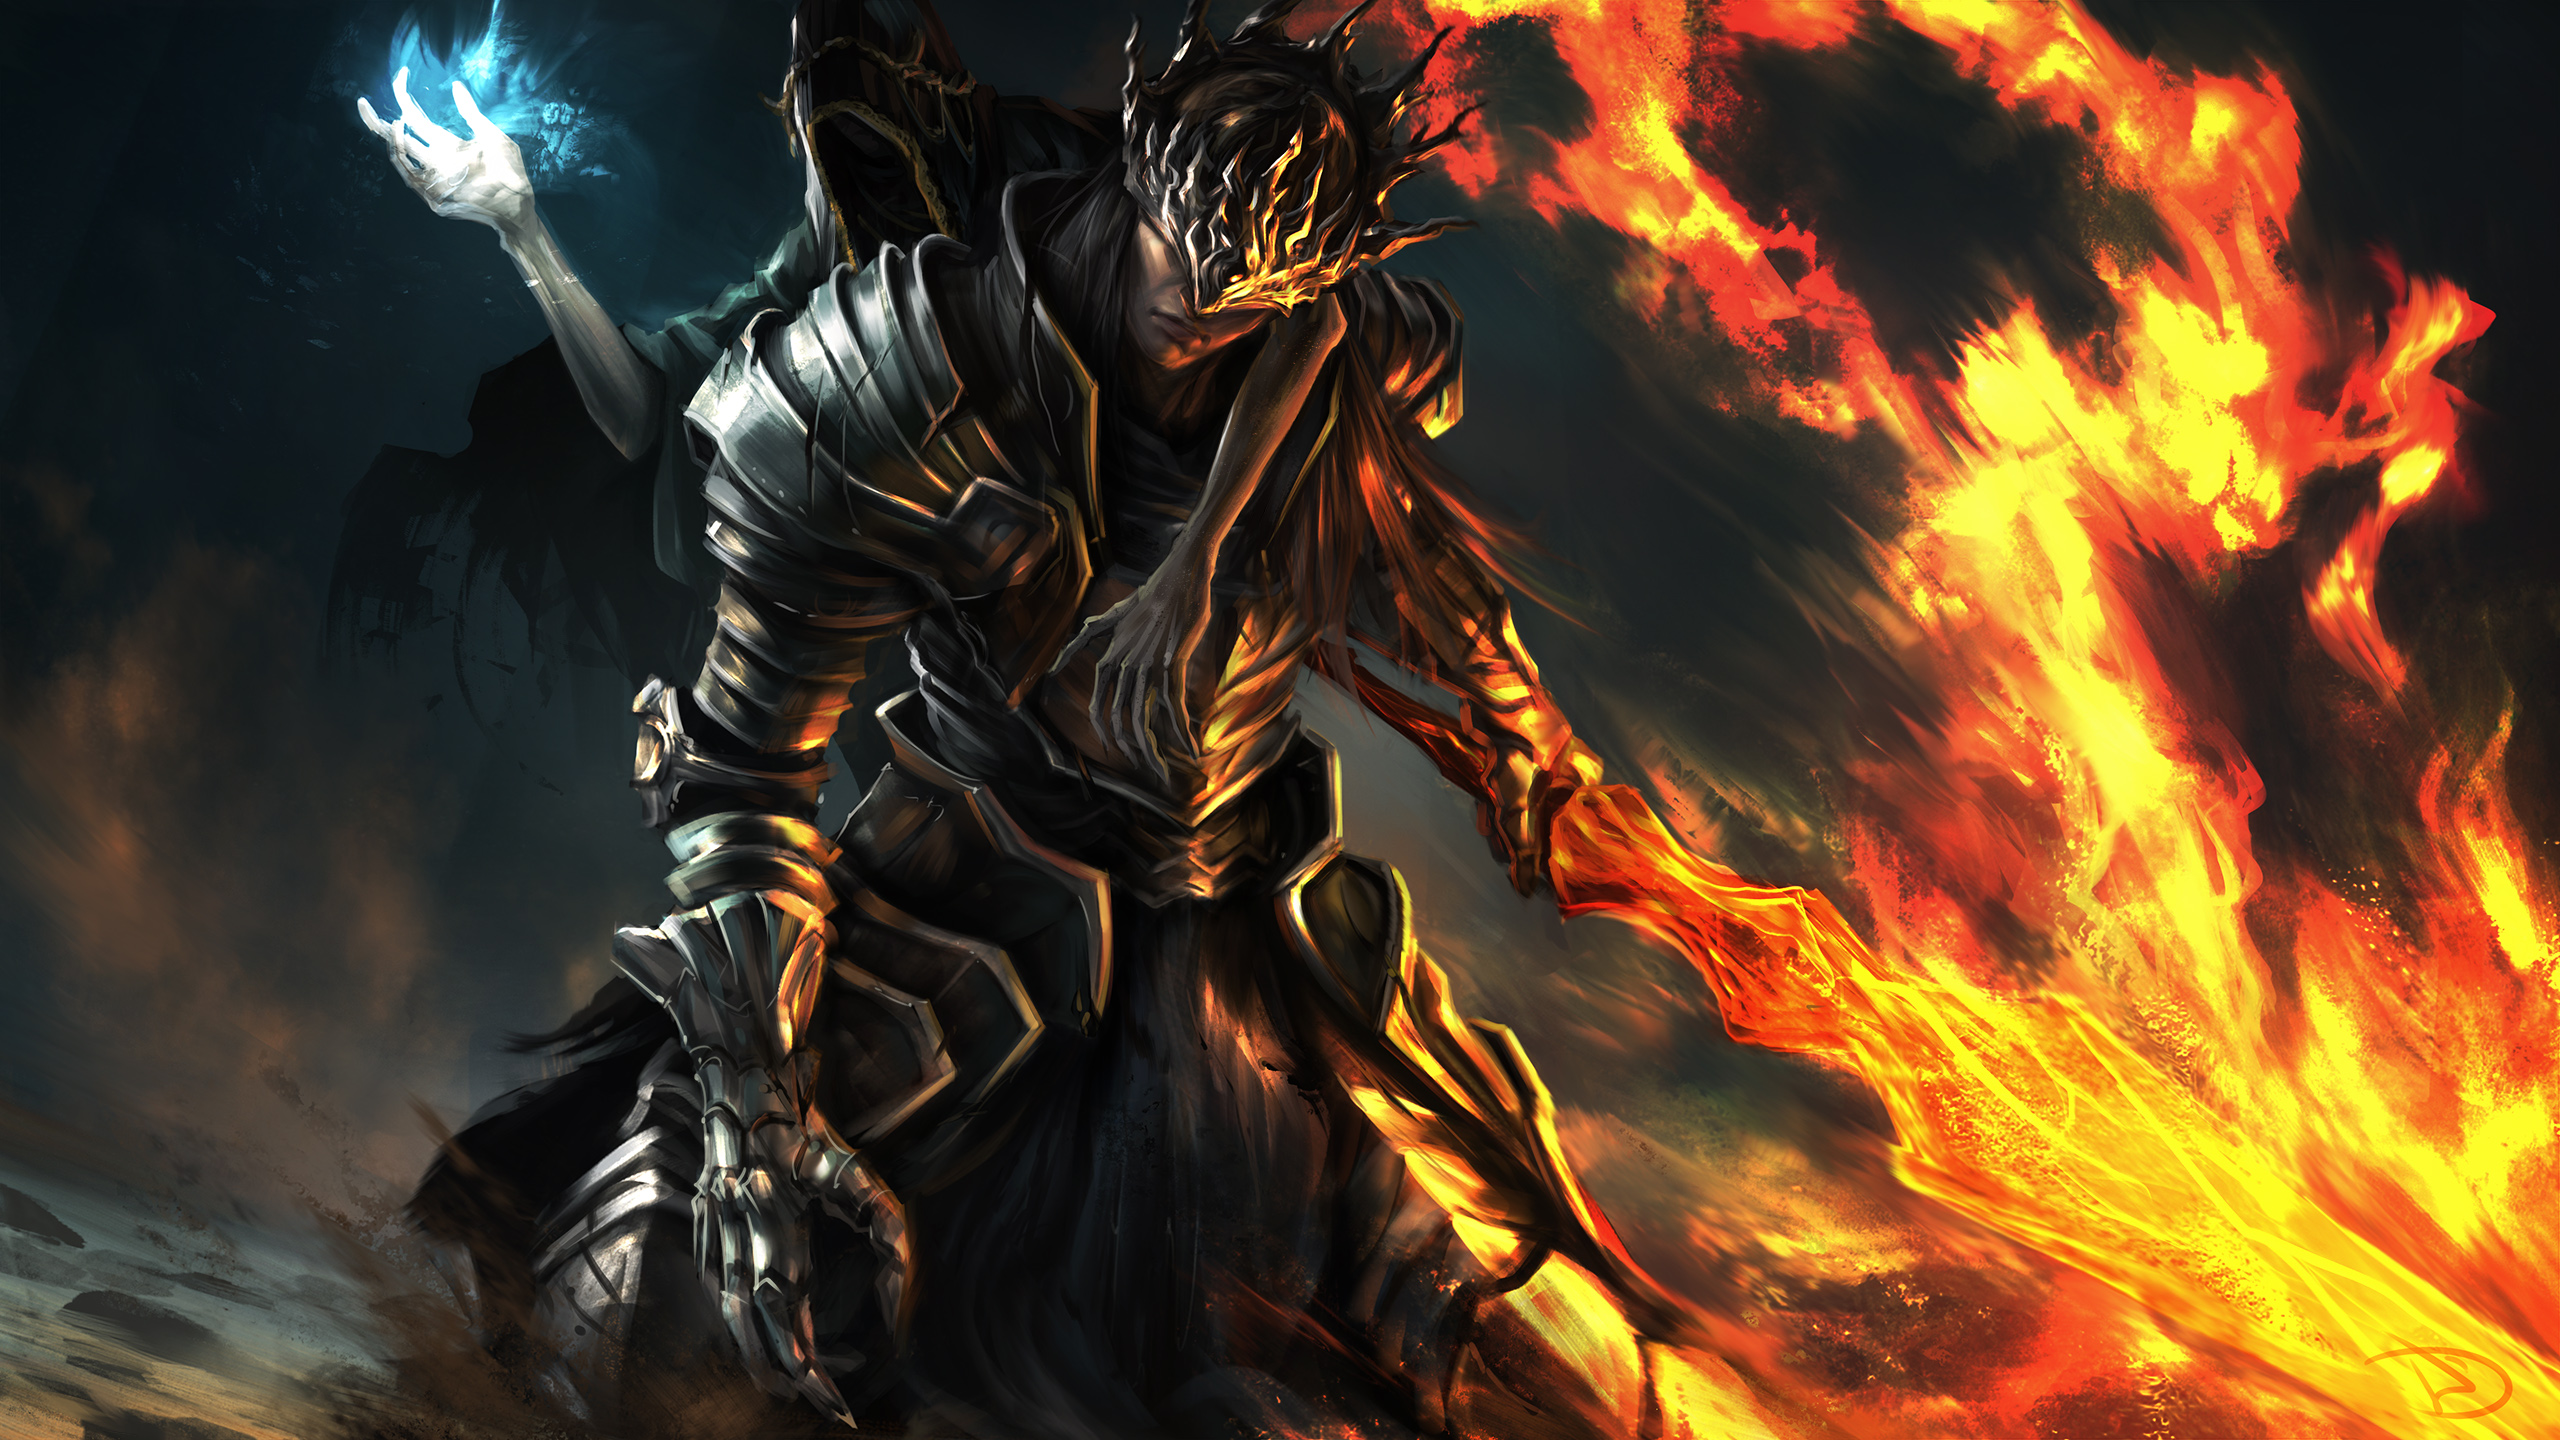 1366x768 lorian dark souls 3 1366x768 resolution hd 4k wallpapers